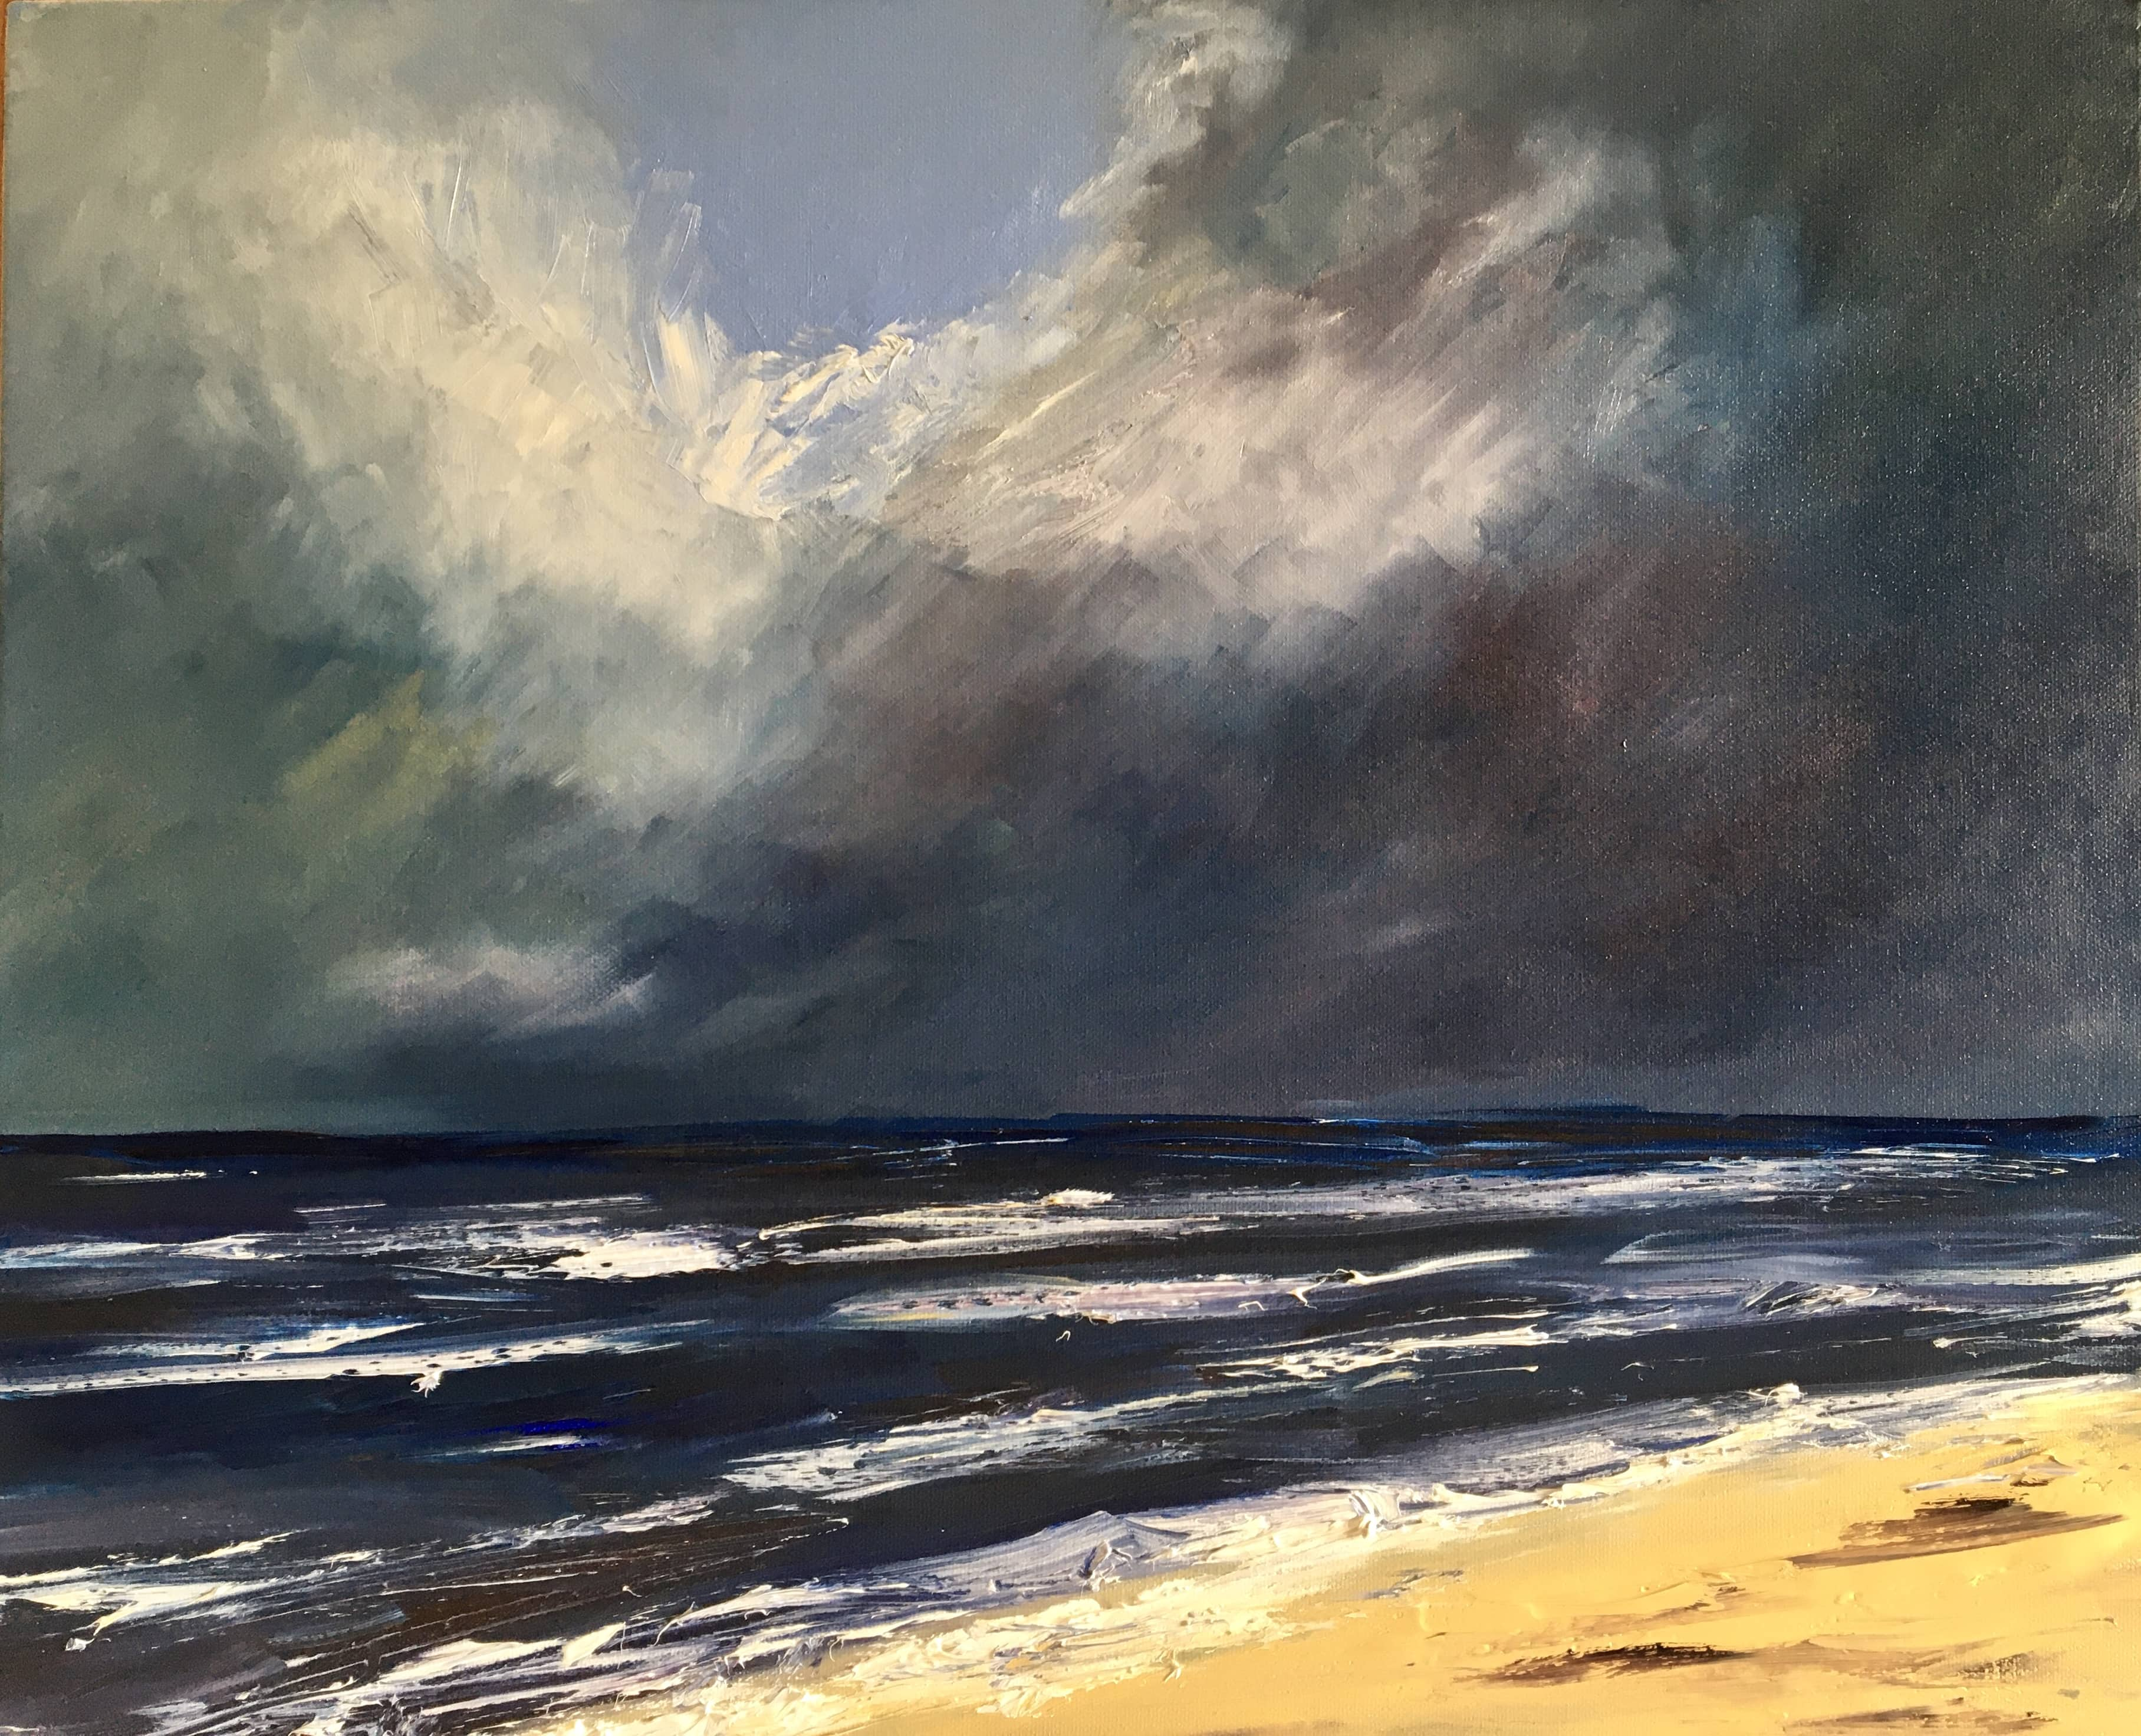 Oil painting seascape waves storm clouds Northumberland coast Druridge Bay